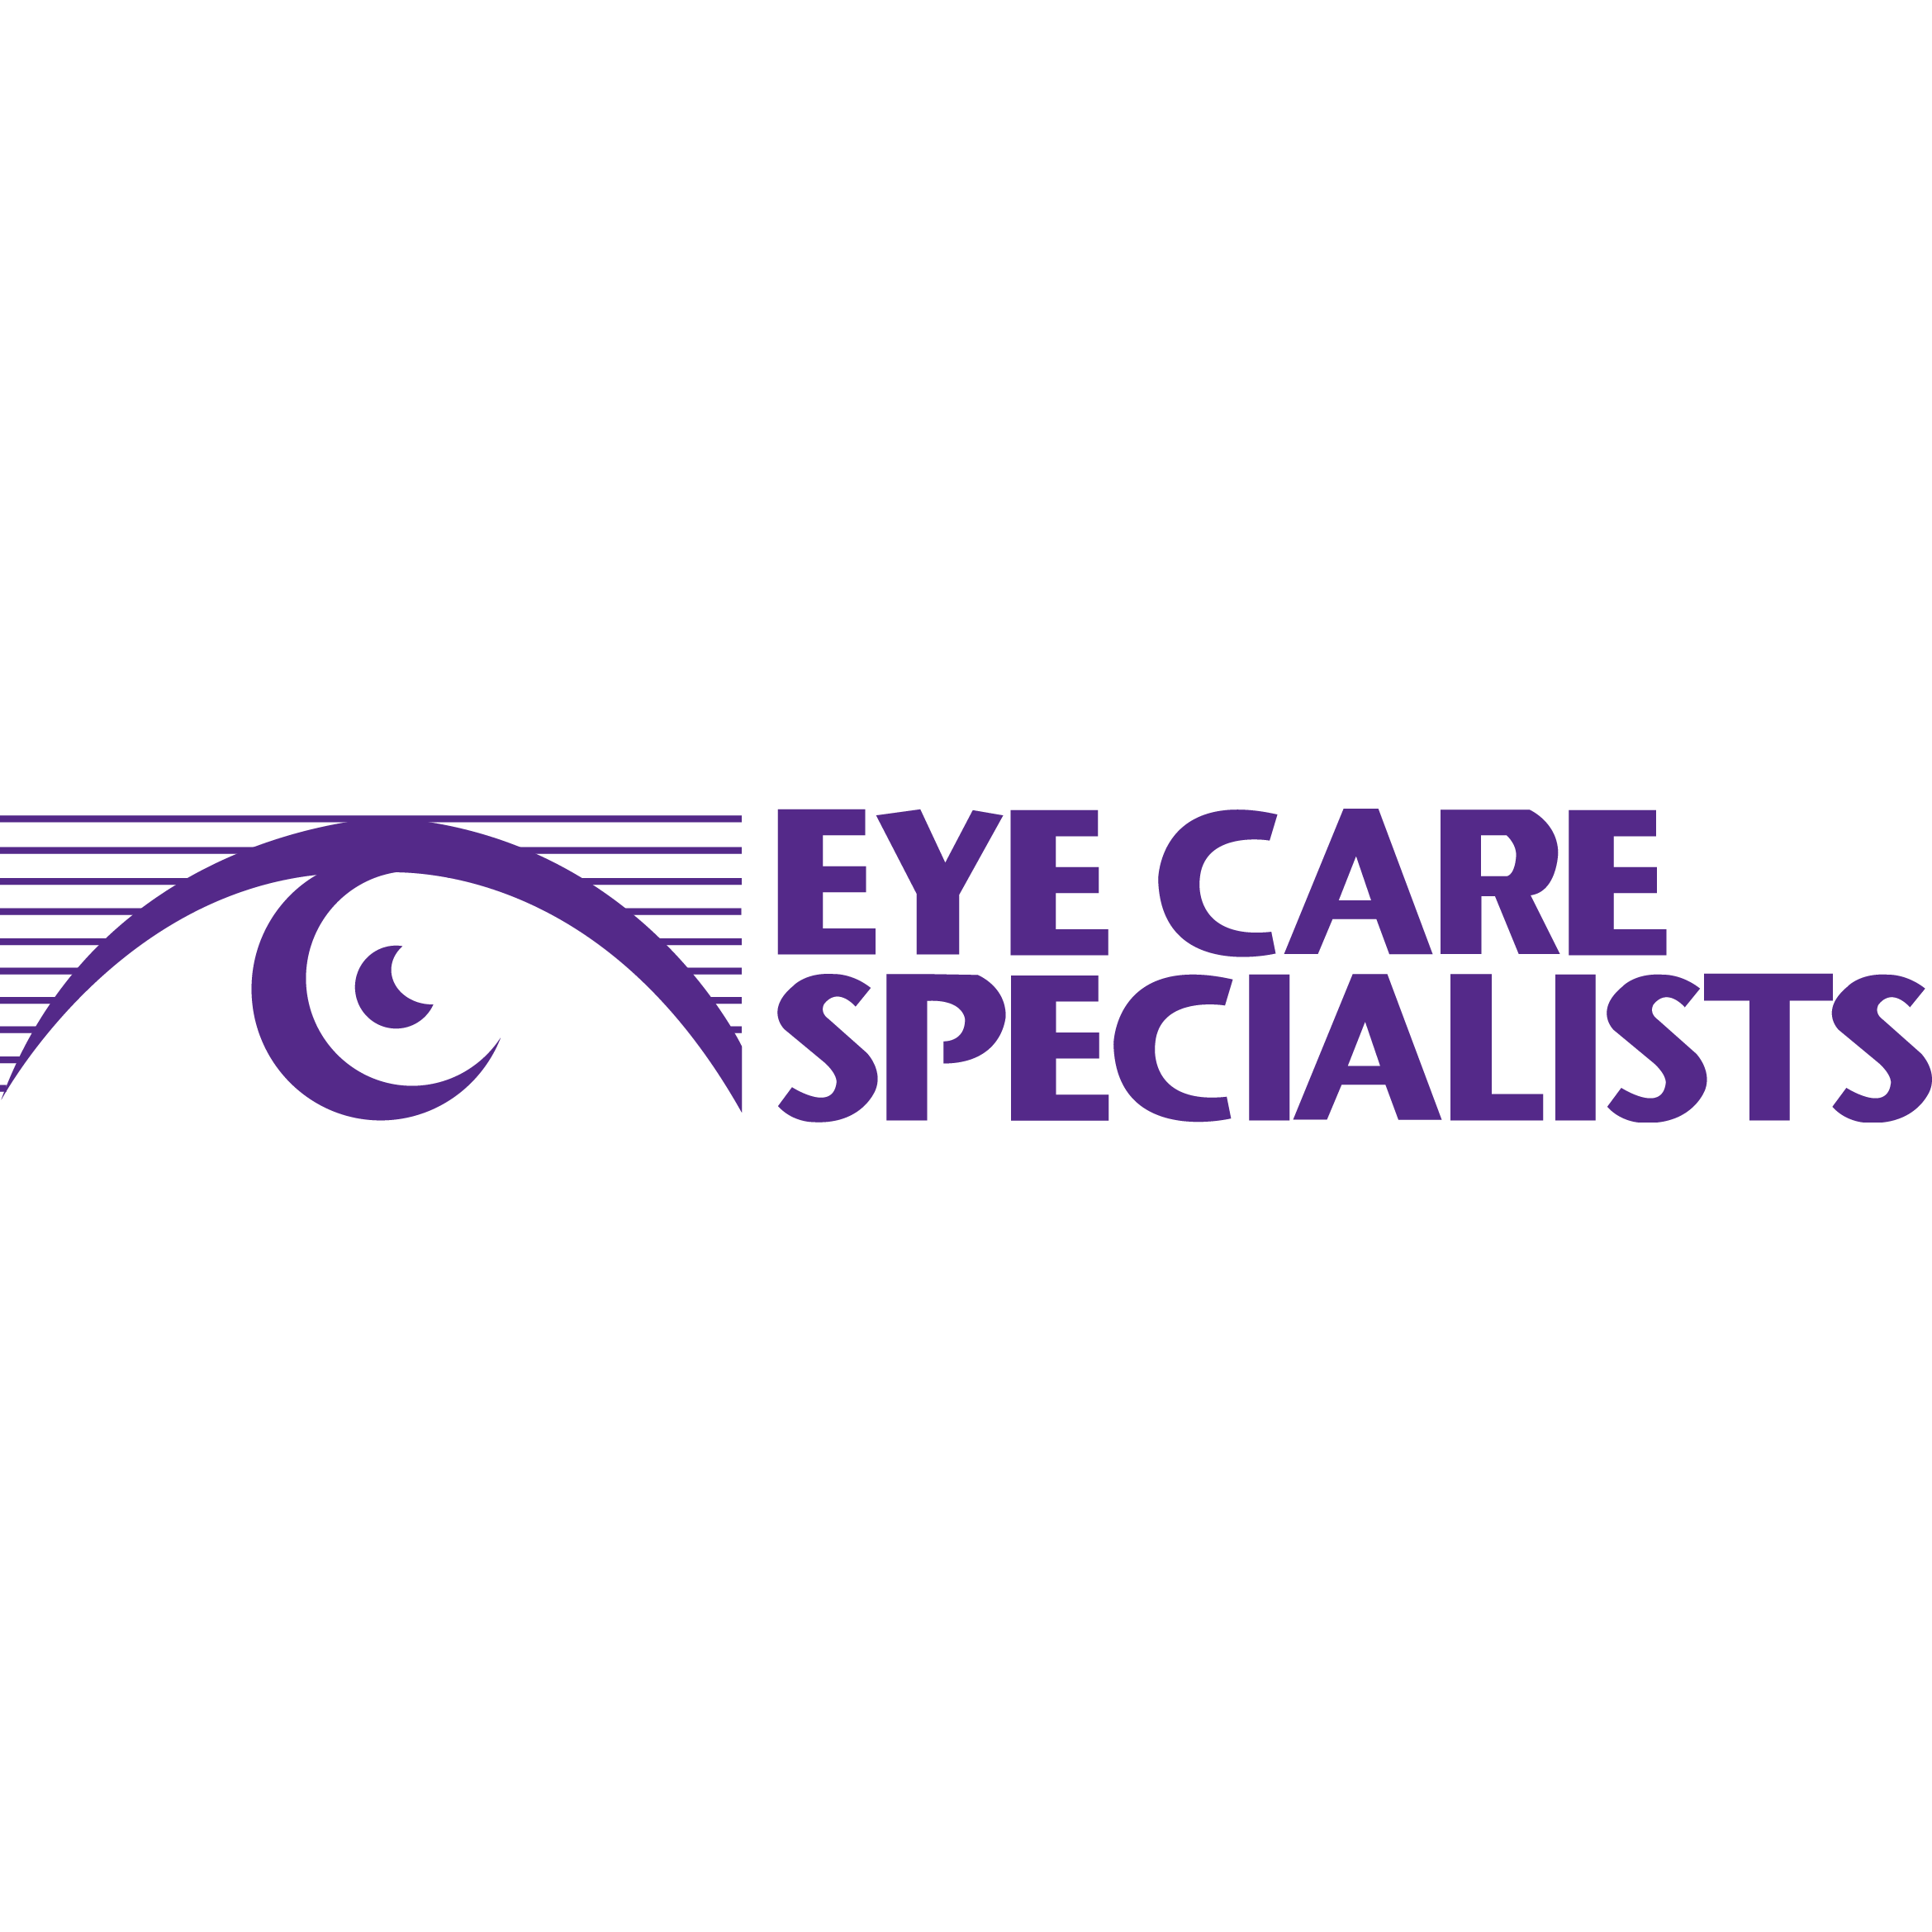 Eye Care Specialists image 3